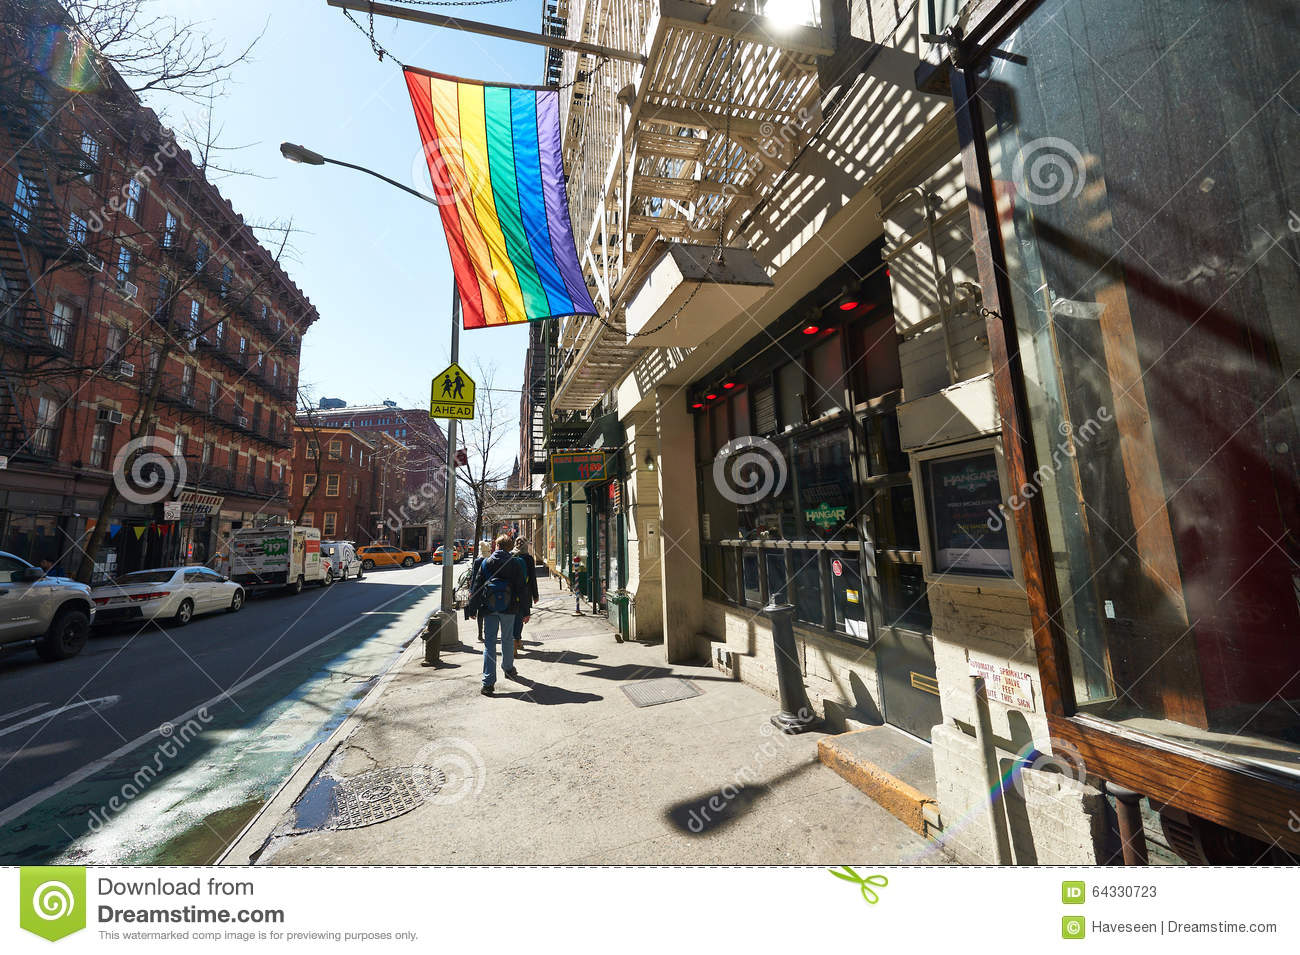 NEW YORK CITY - MARCH 31: Rainbow Gay Pride Flag at Manhattan street, March  31 2014 in New York, USA